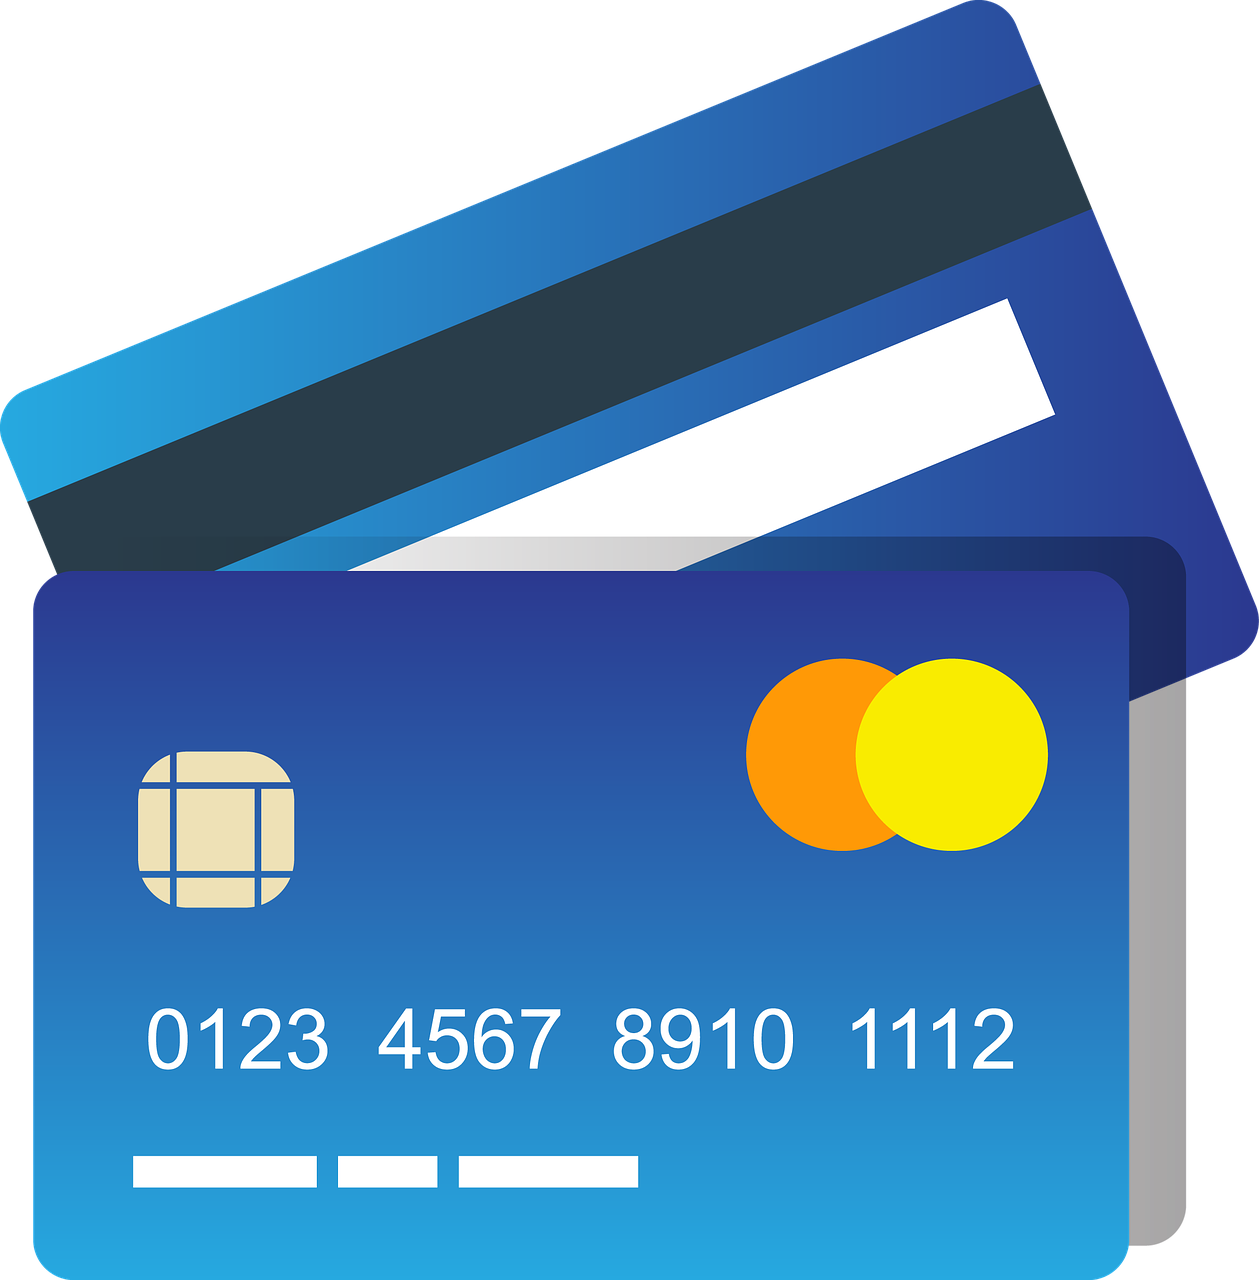 Effentiicorp - Online Payment Systems